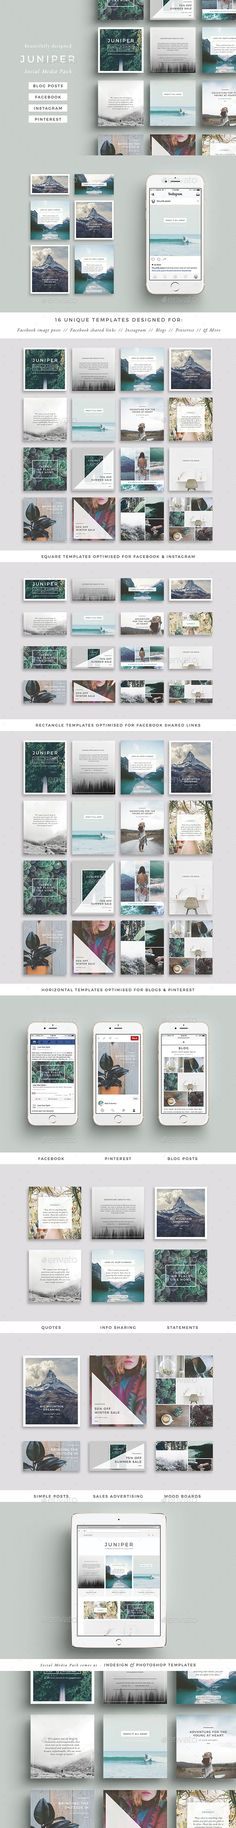 Juniper Social Media Pack — PSD Template #best social media #Pinterest • Download ➝ https://graphicriver.net/item/juniper-social-media-pack/18468890?ref=pxcr